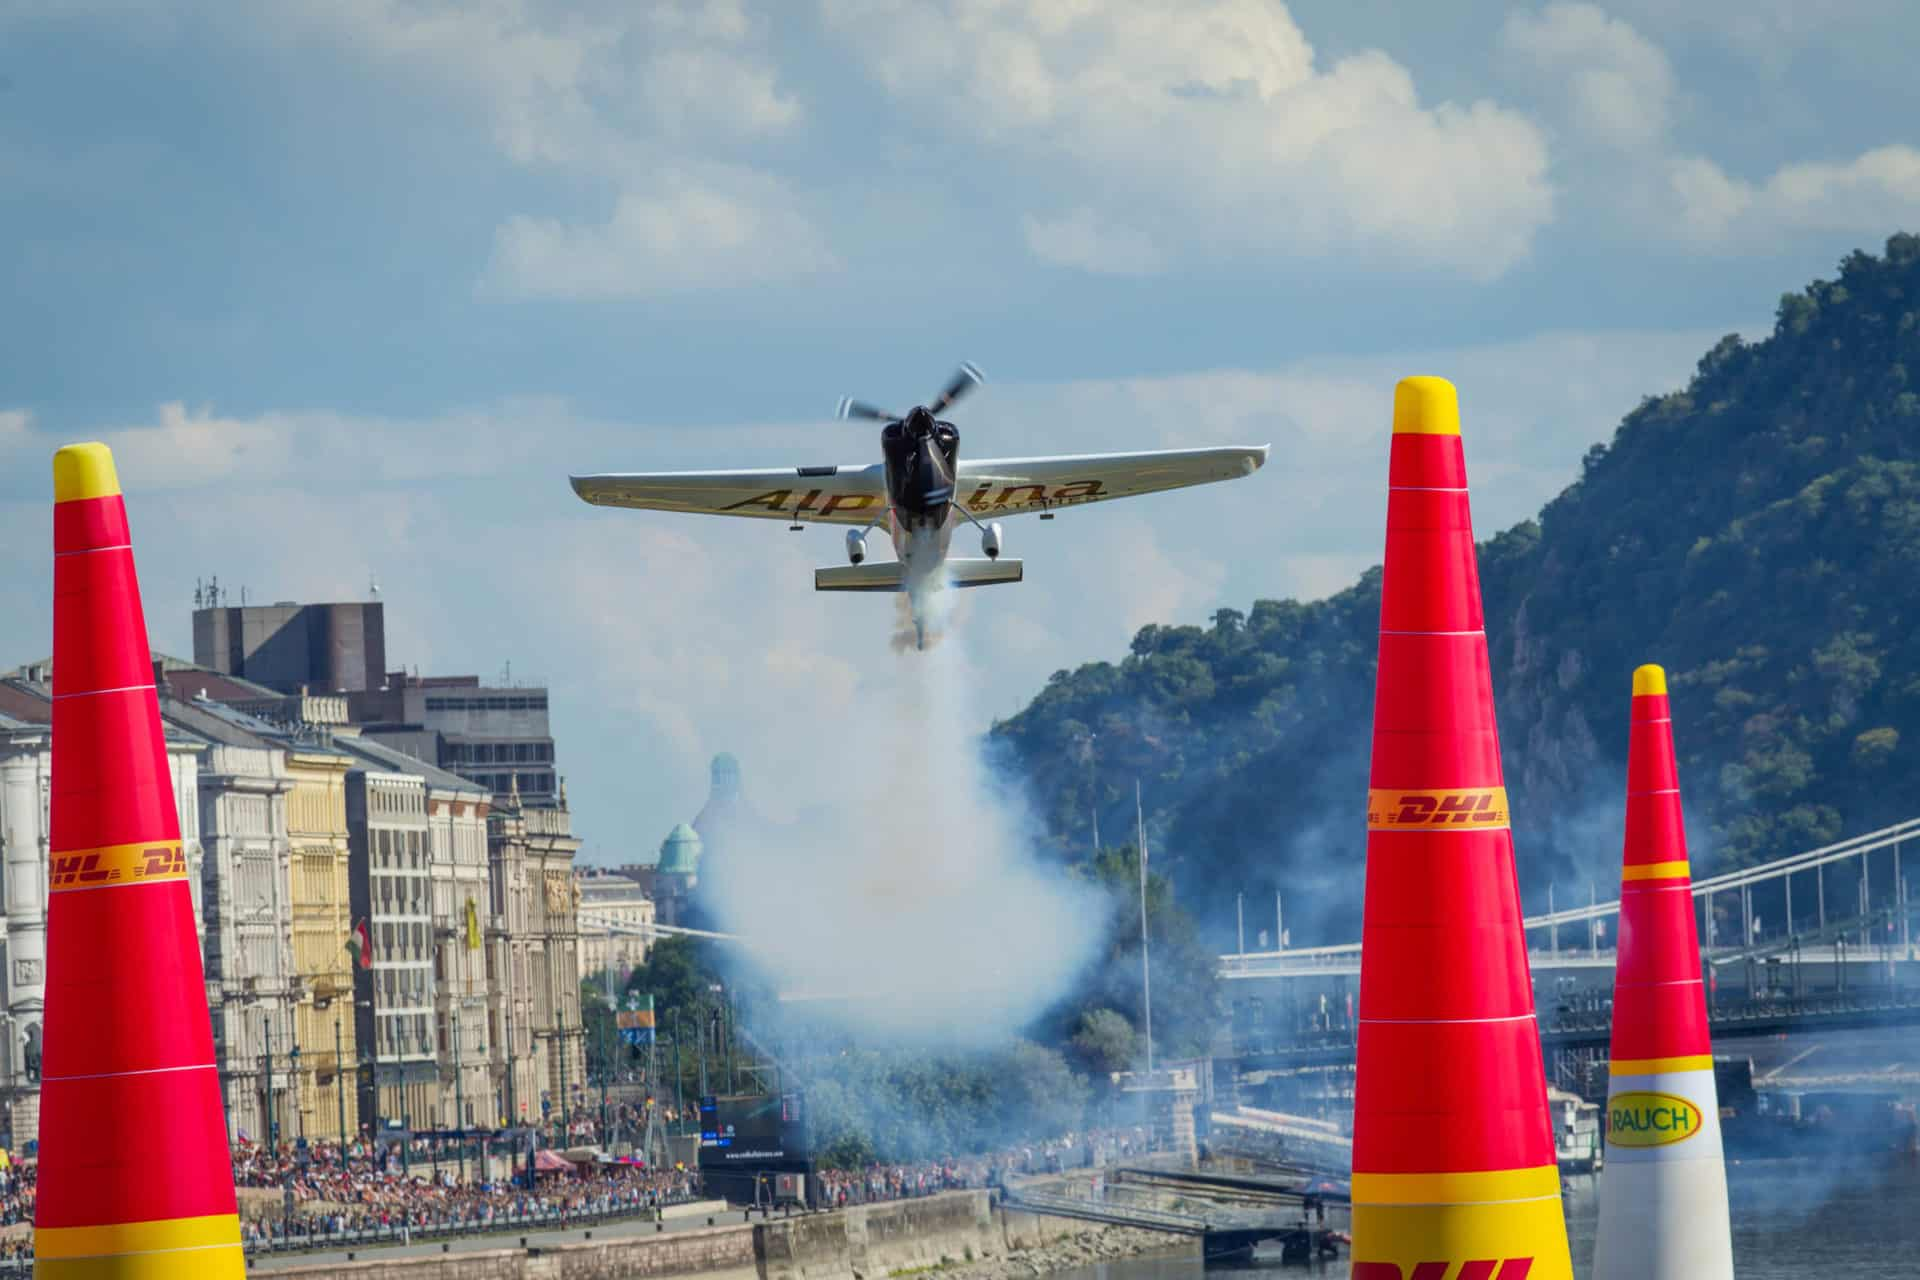 Michael Goulian #99, United States, Team Goulian,  Zivko Edge 540 V2, Red Bull Air Race Championship 2017, Red Bull Air Race Budapest 2017, July 1-2 2017, Budapest 2017, Hungary, Round 4, Saturday, Qualification